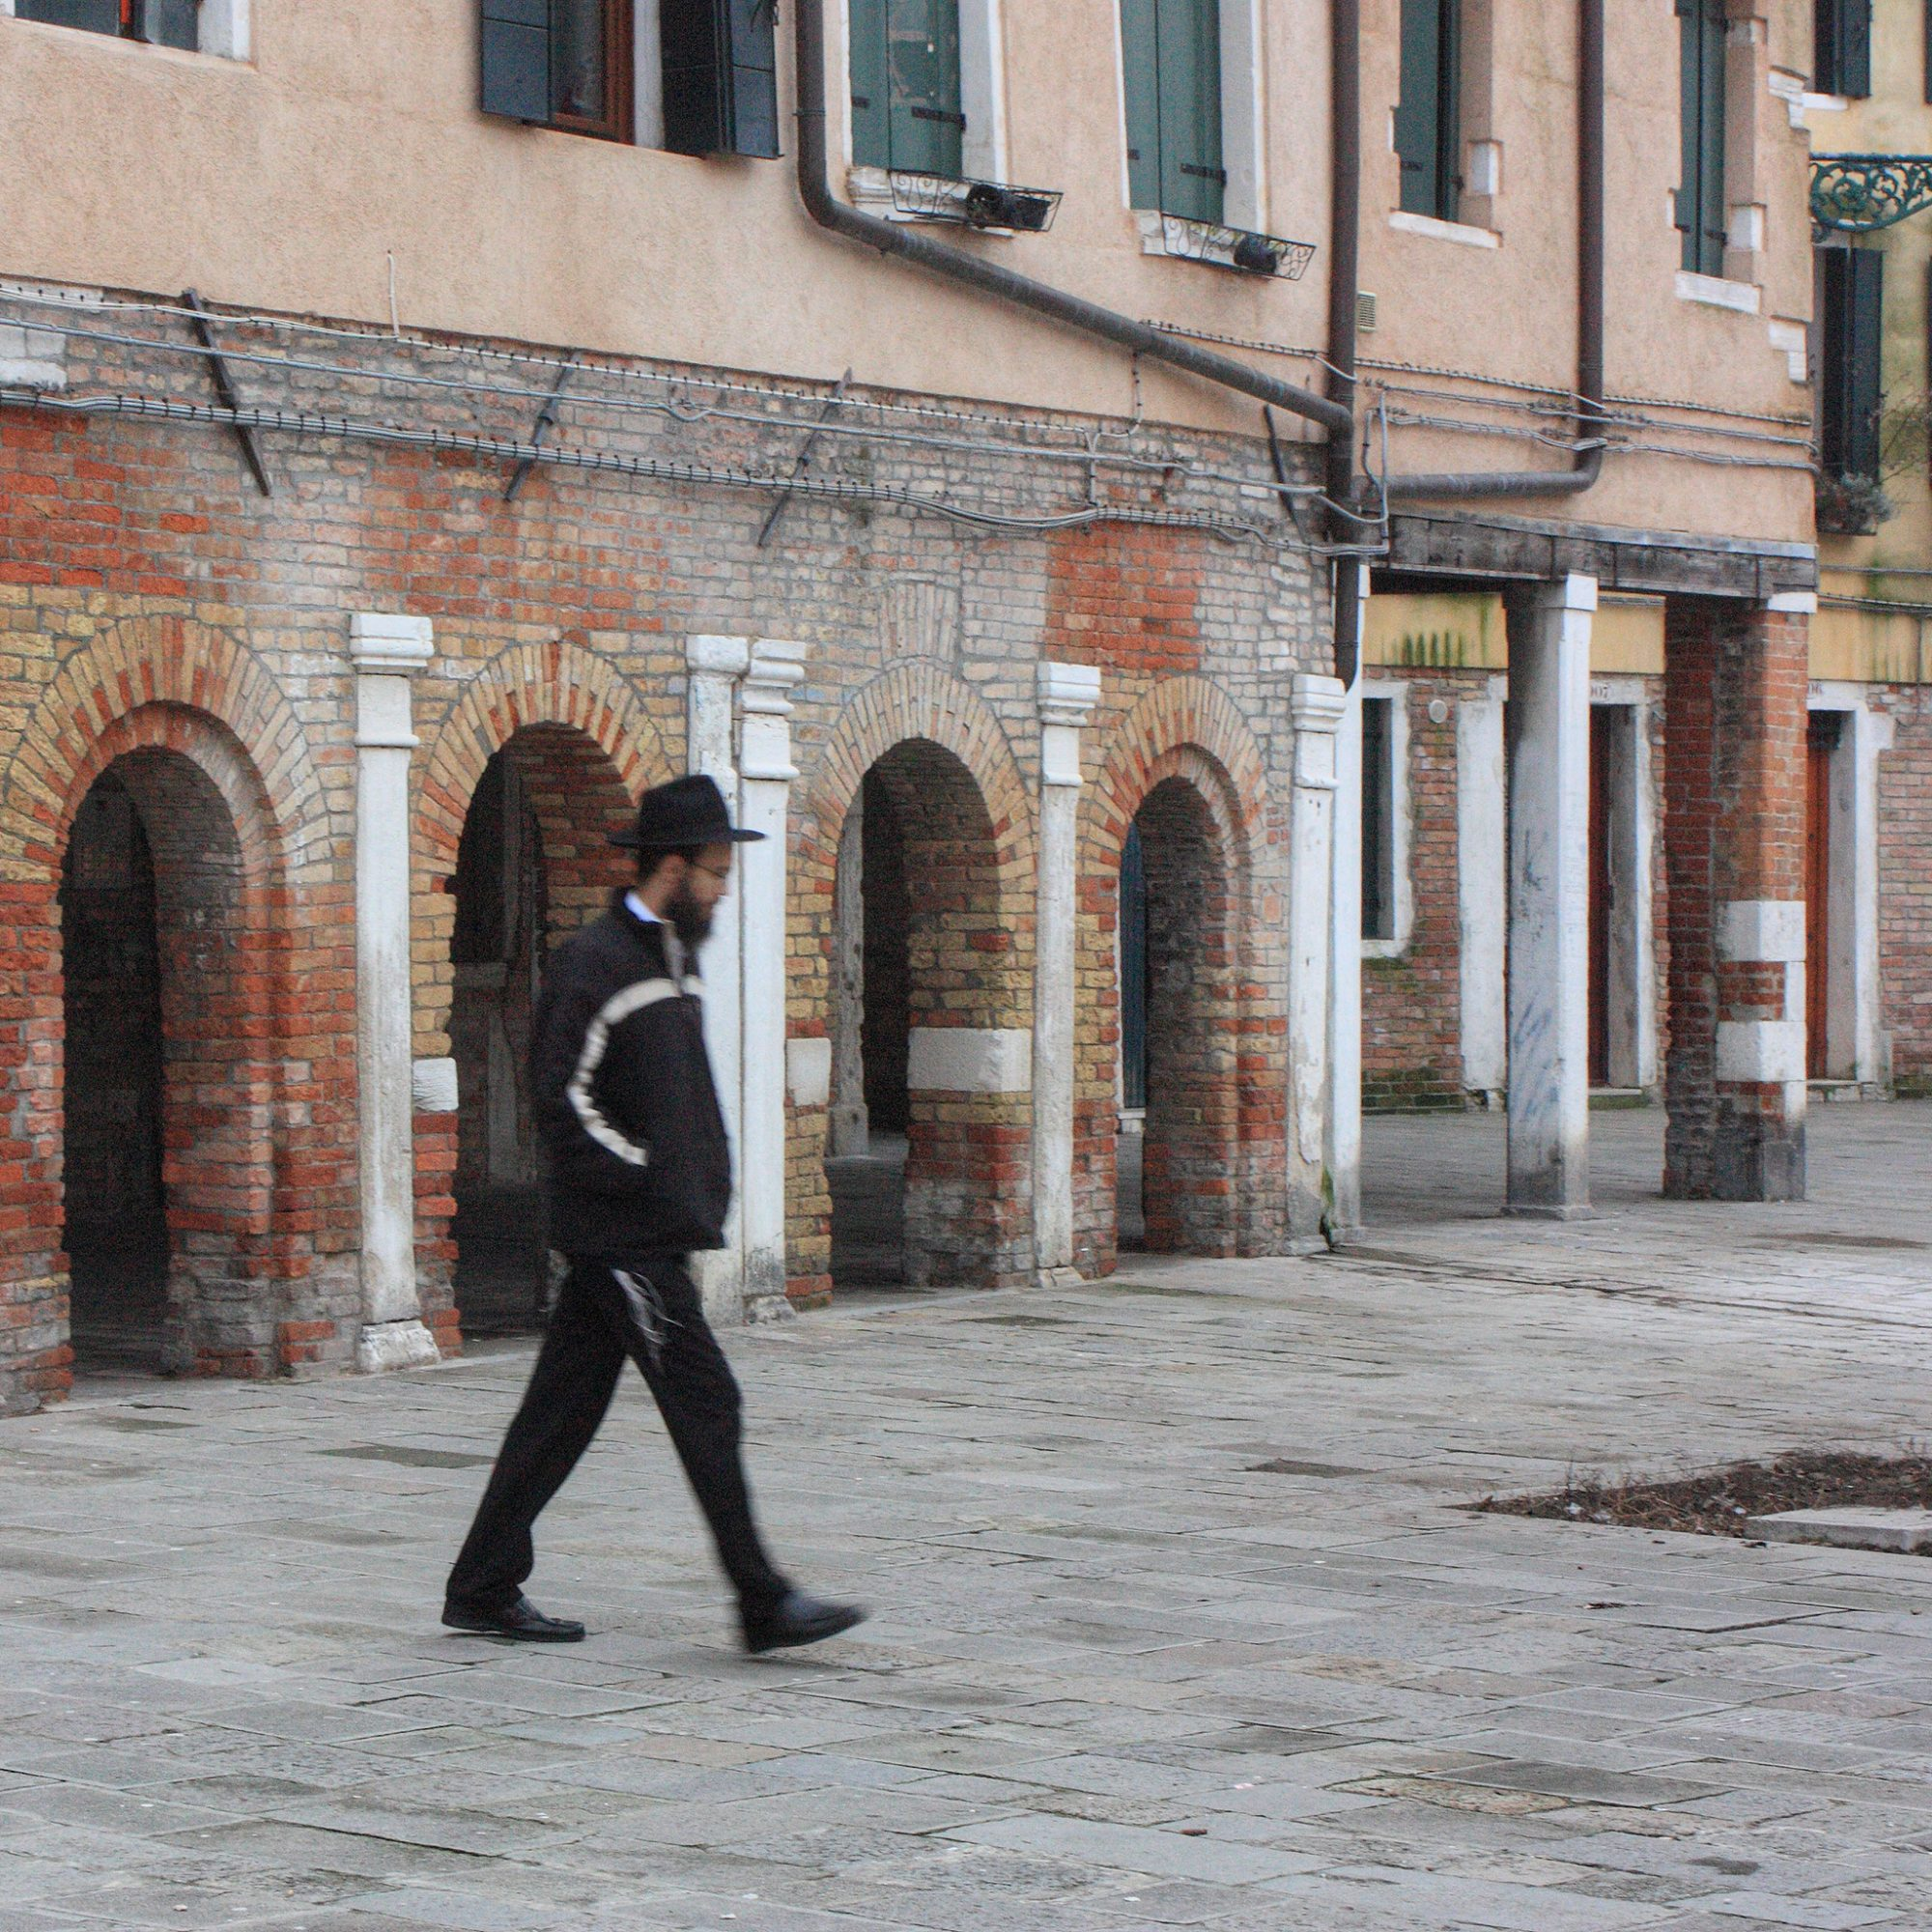 Renovation Plans Moving Ahead for Venice's Jewish Ghetto